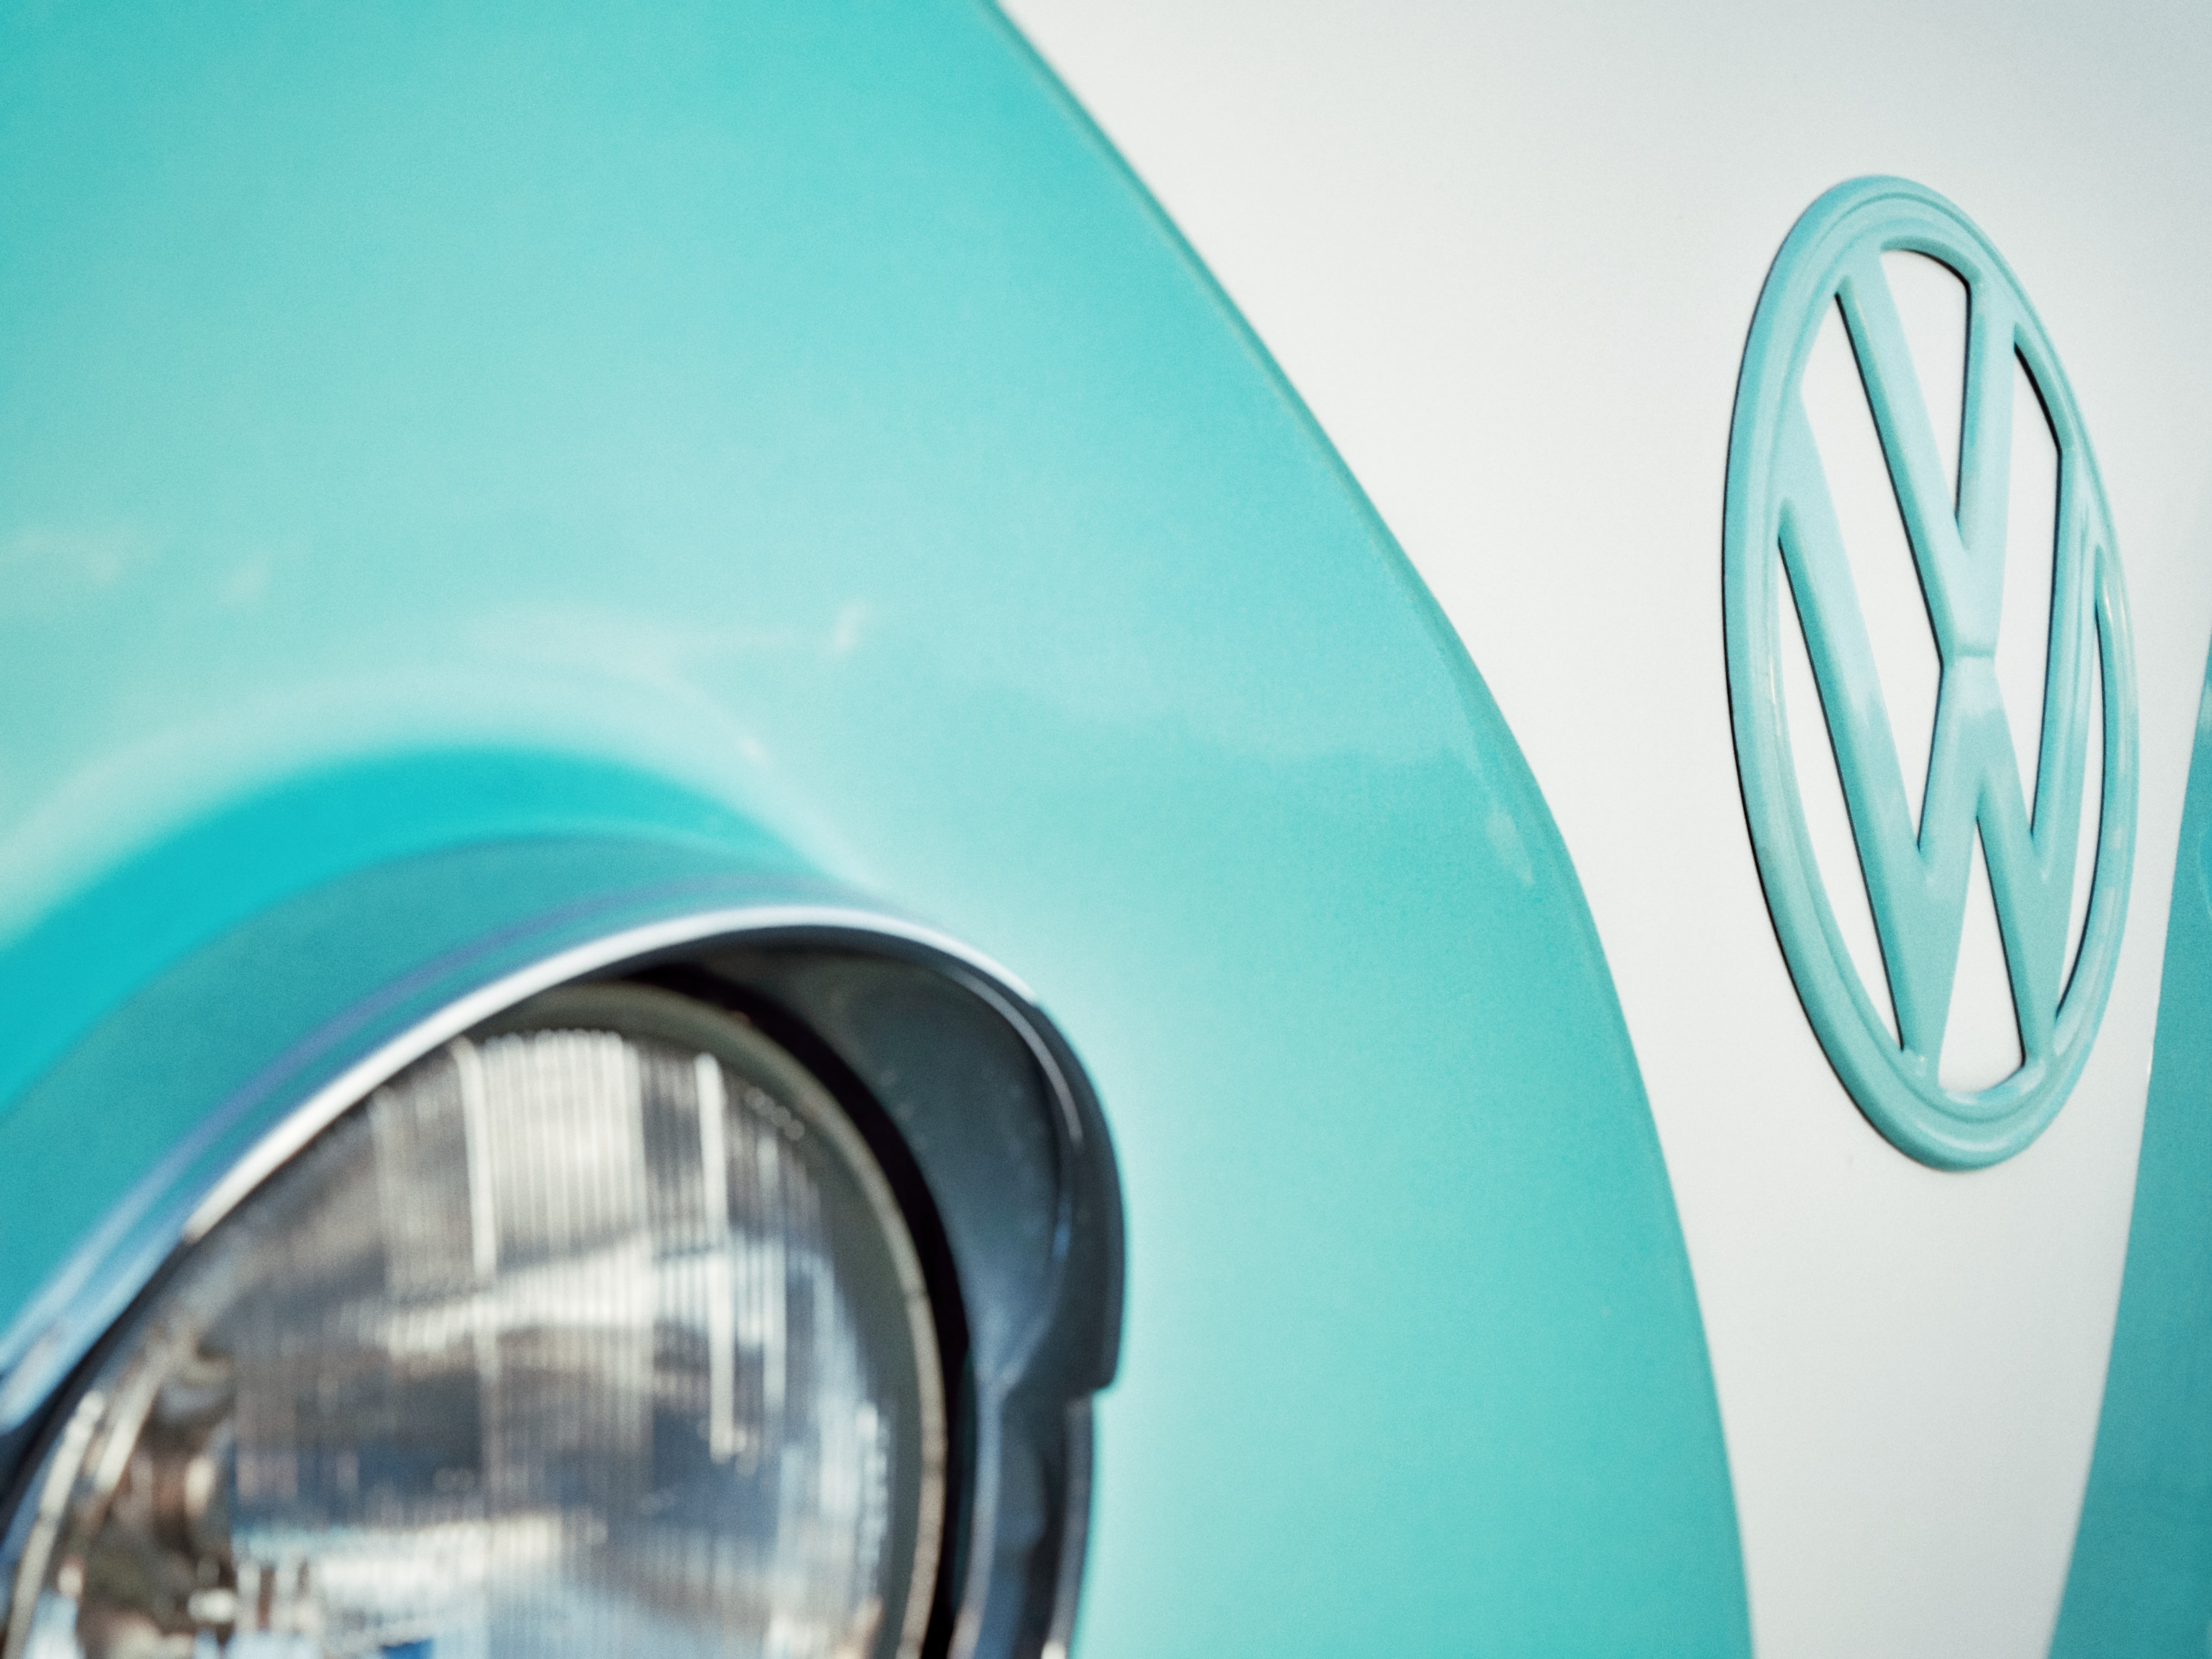 close-up photo of teal and white Volkswagen Type 1